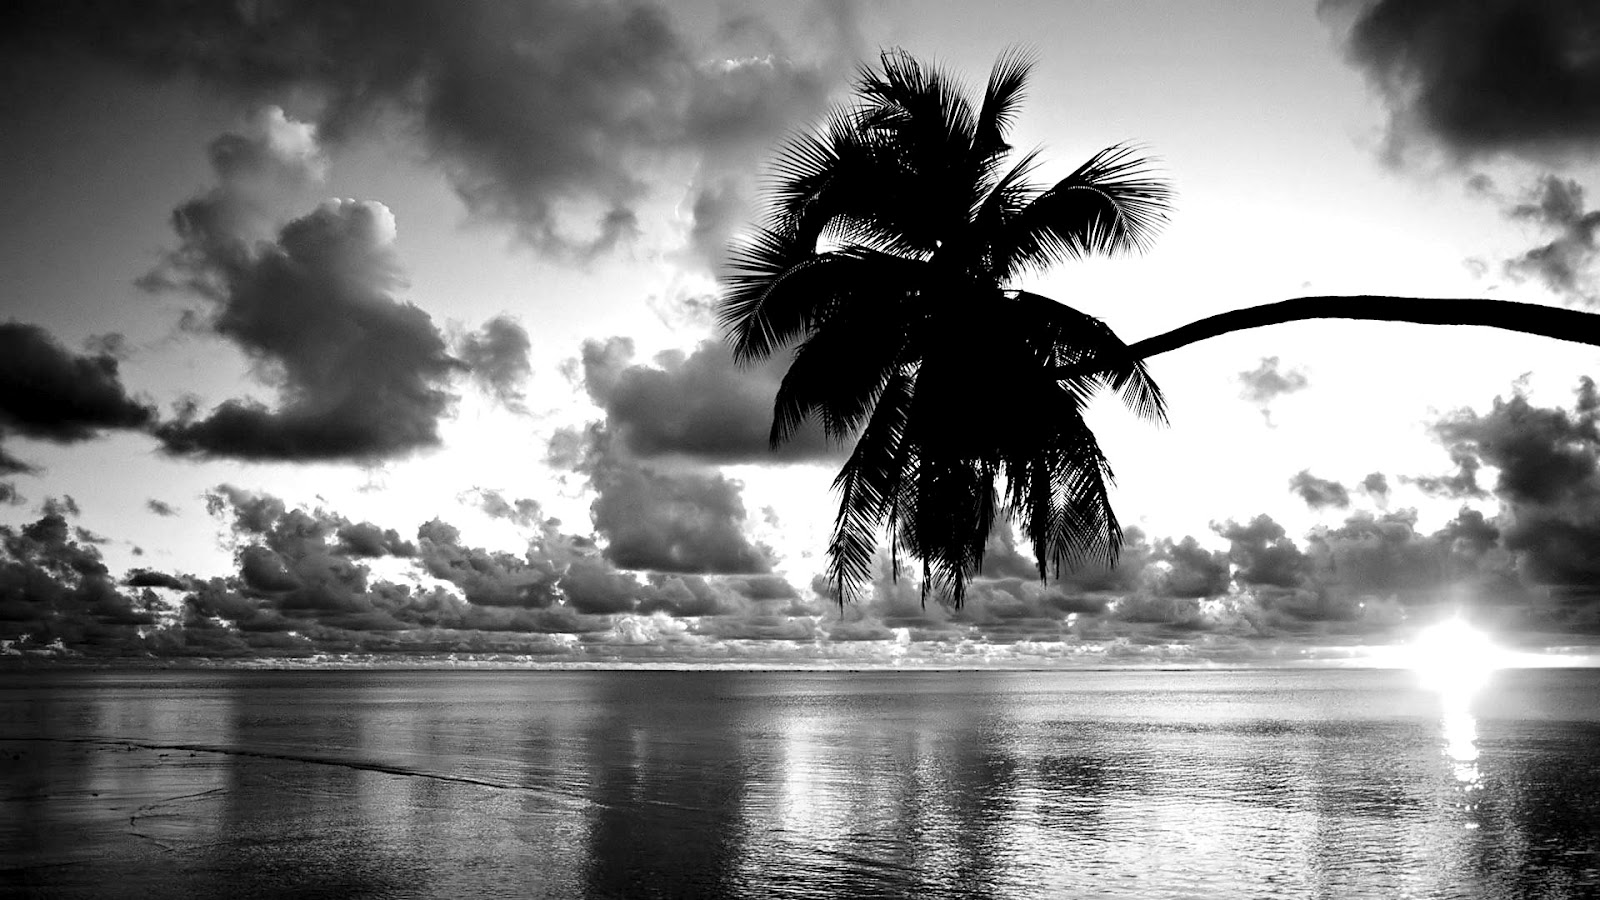 Hd Black And White Wallpapers